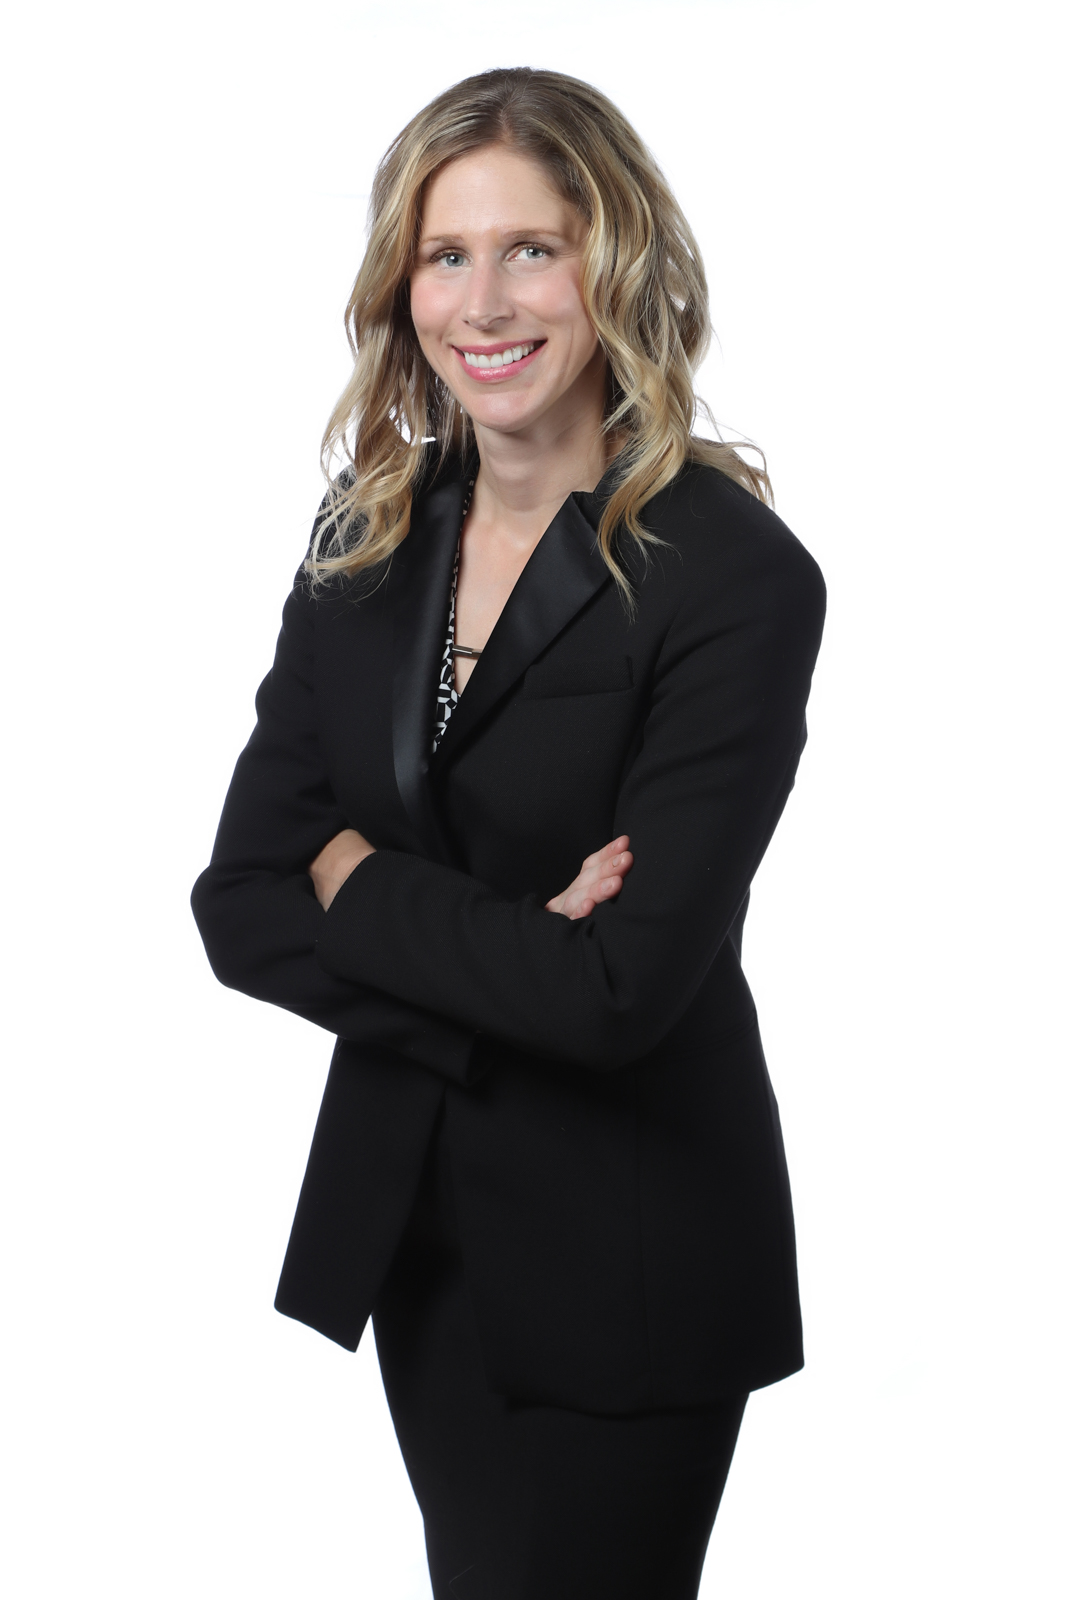 Calgary Lawyer Headshot Photographer